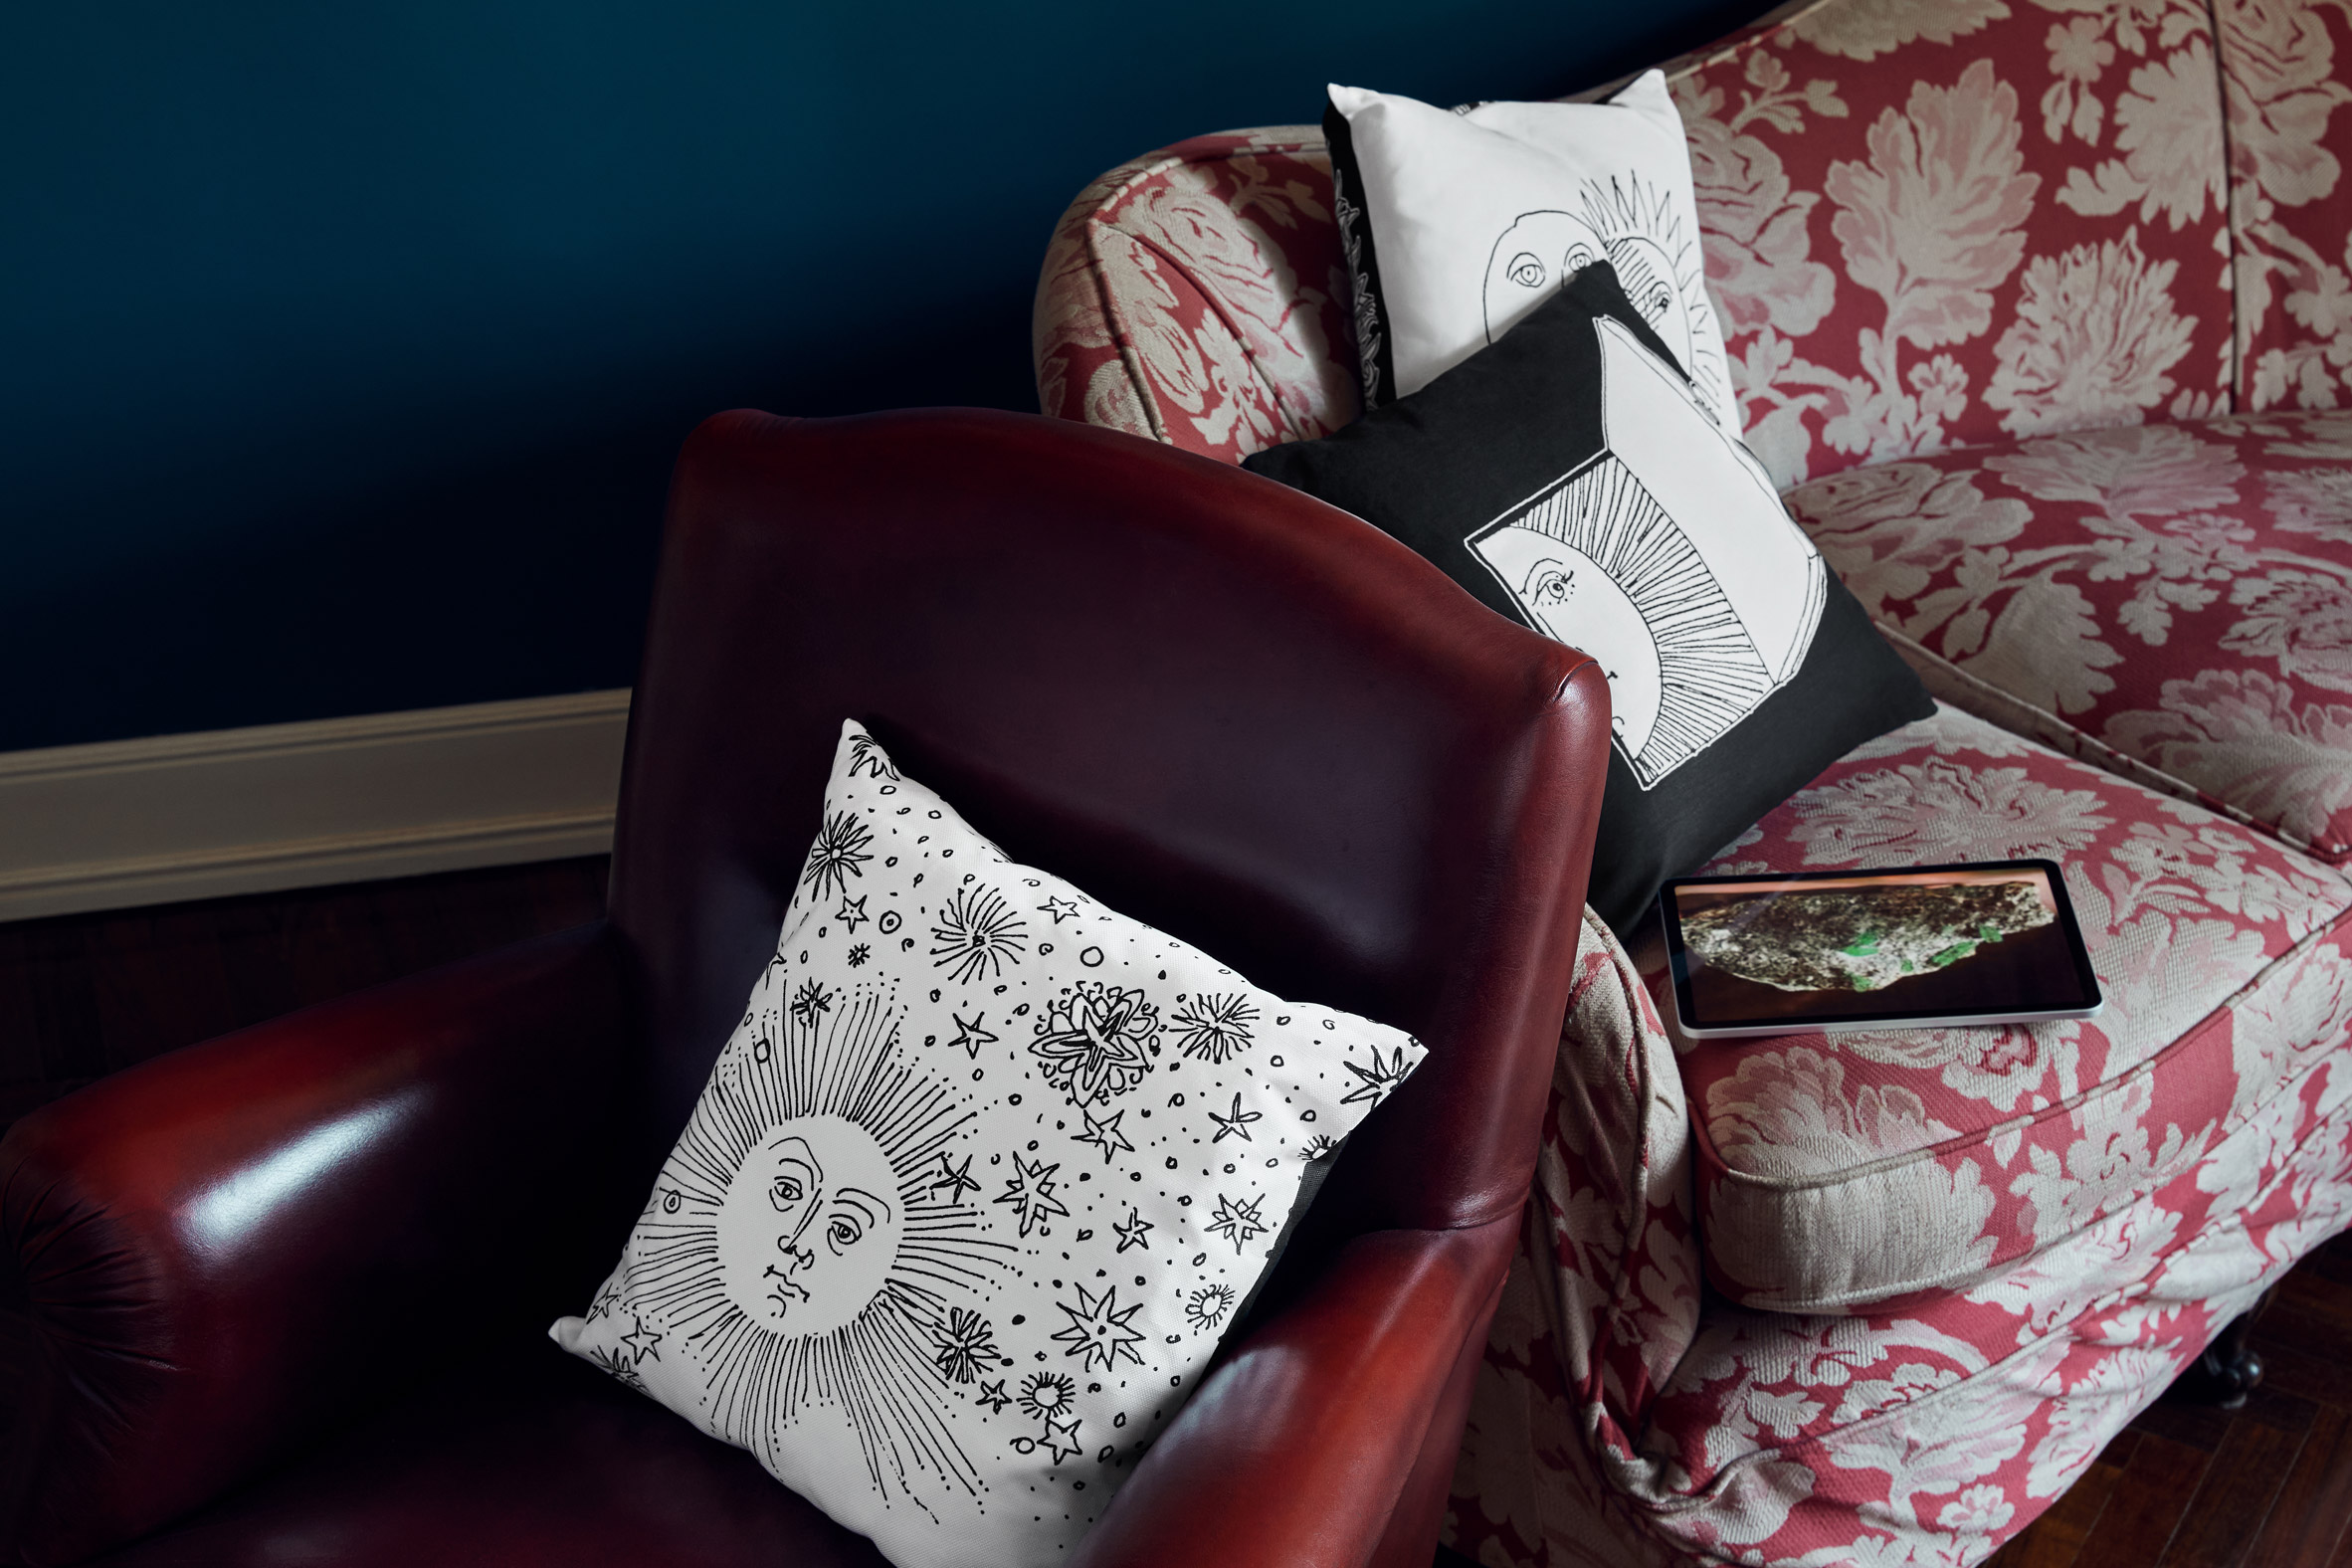 Solitario cushions by Fornasetti